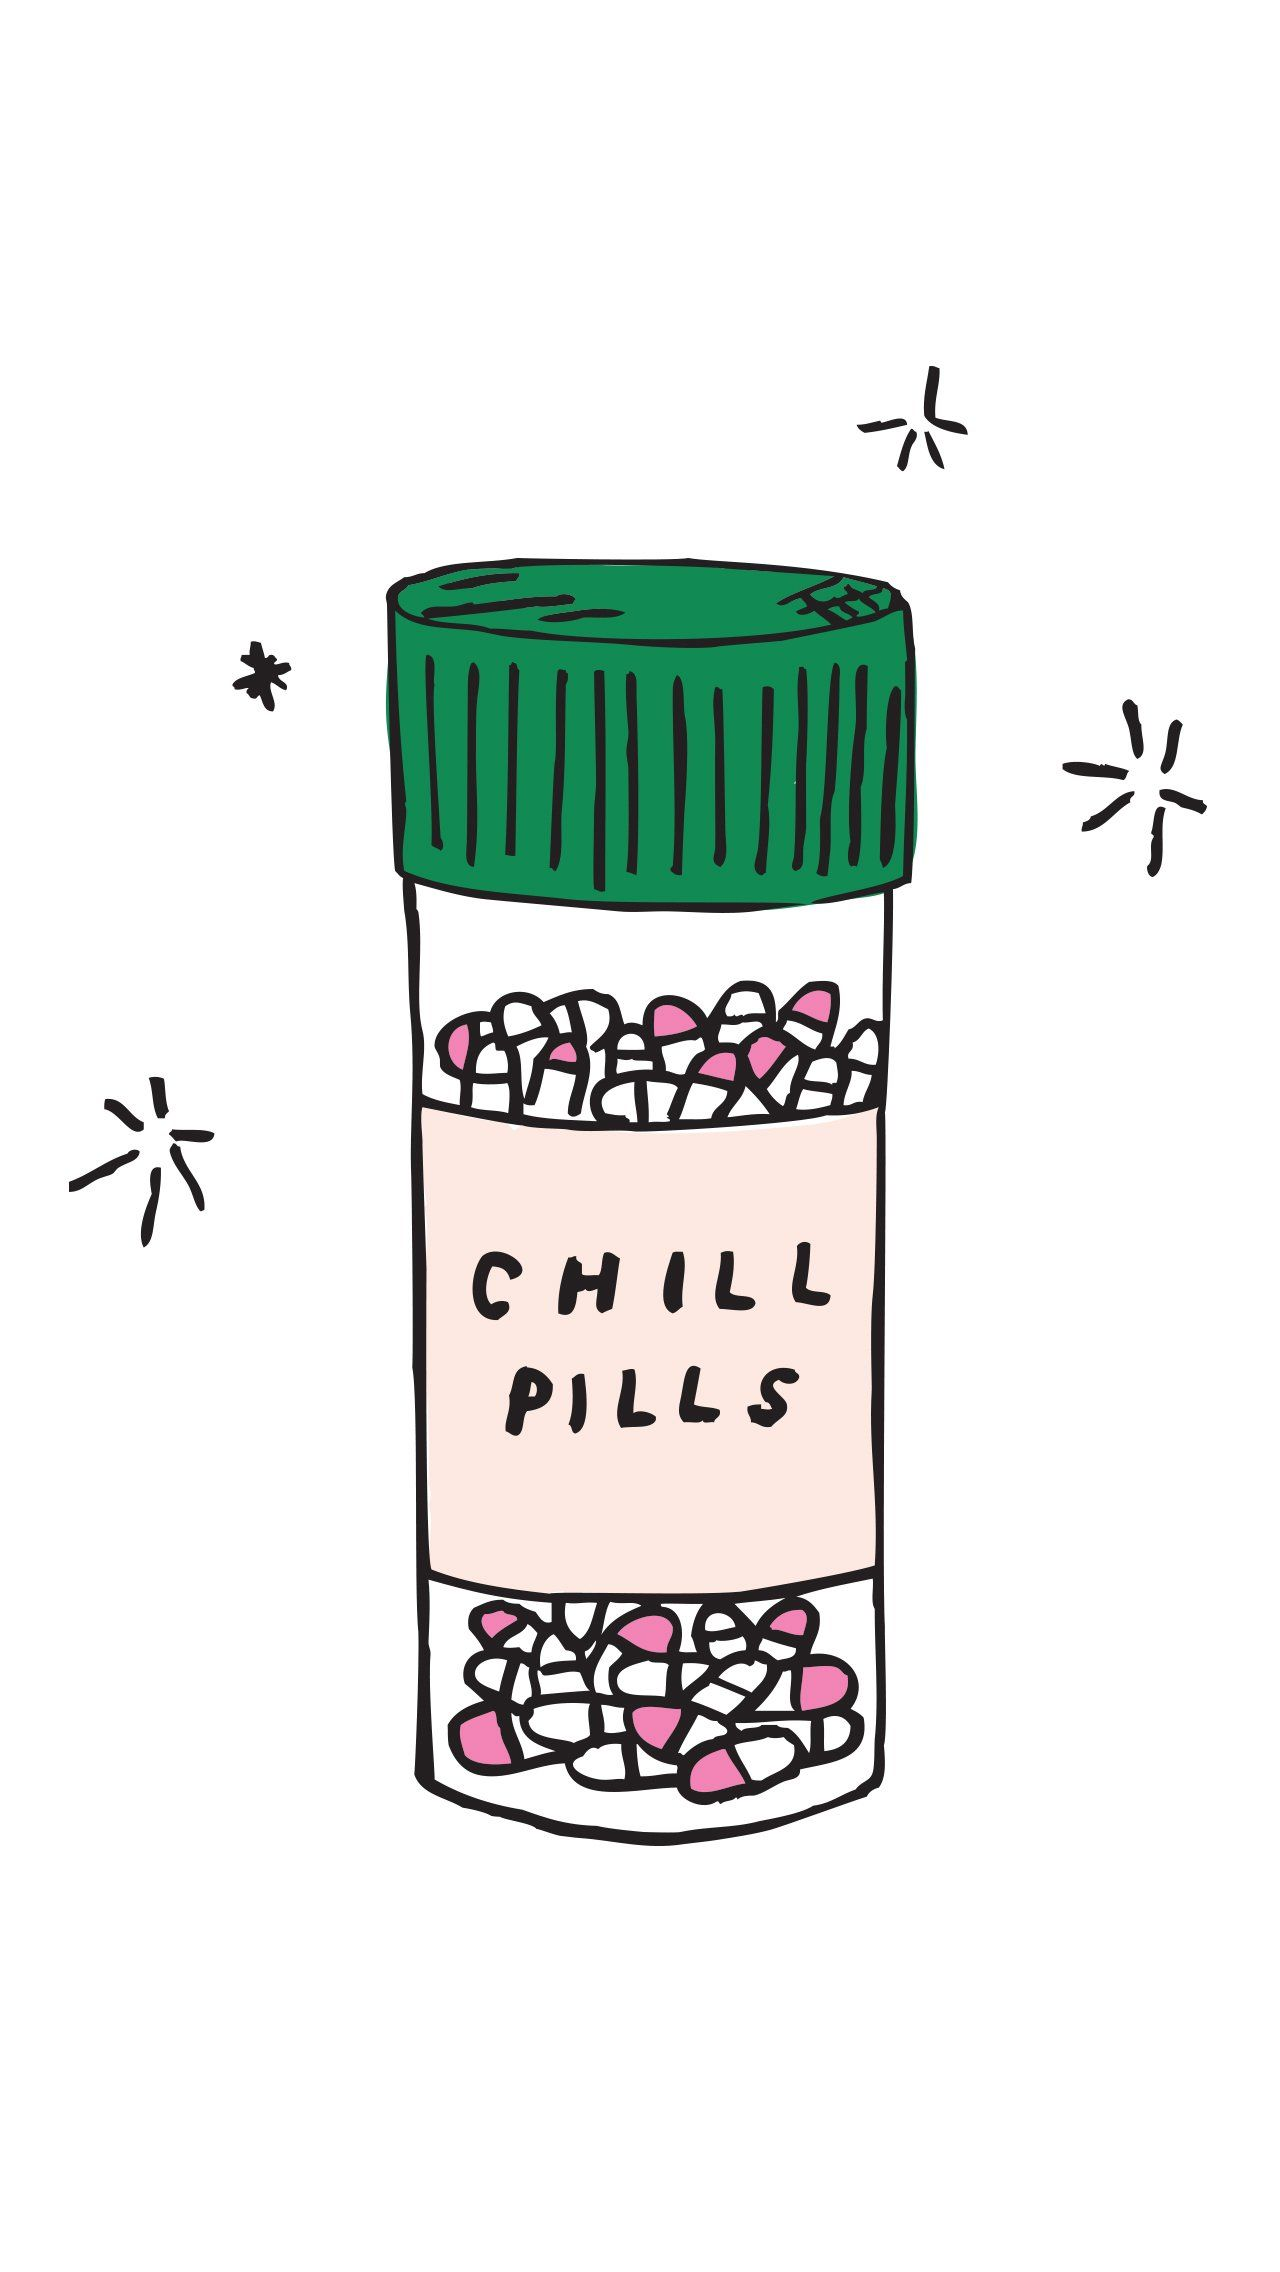 Chill pills pinterest chill pill wallpaper and illustrations 35 free and fun iphone wallpapers to liven up your life voltagebd Image collections